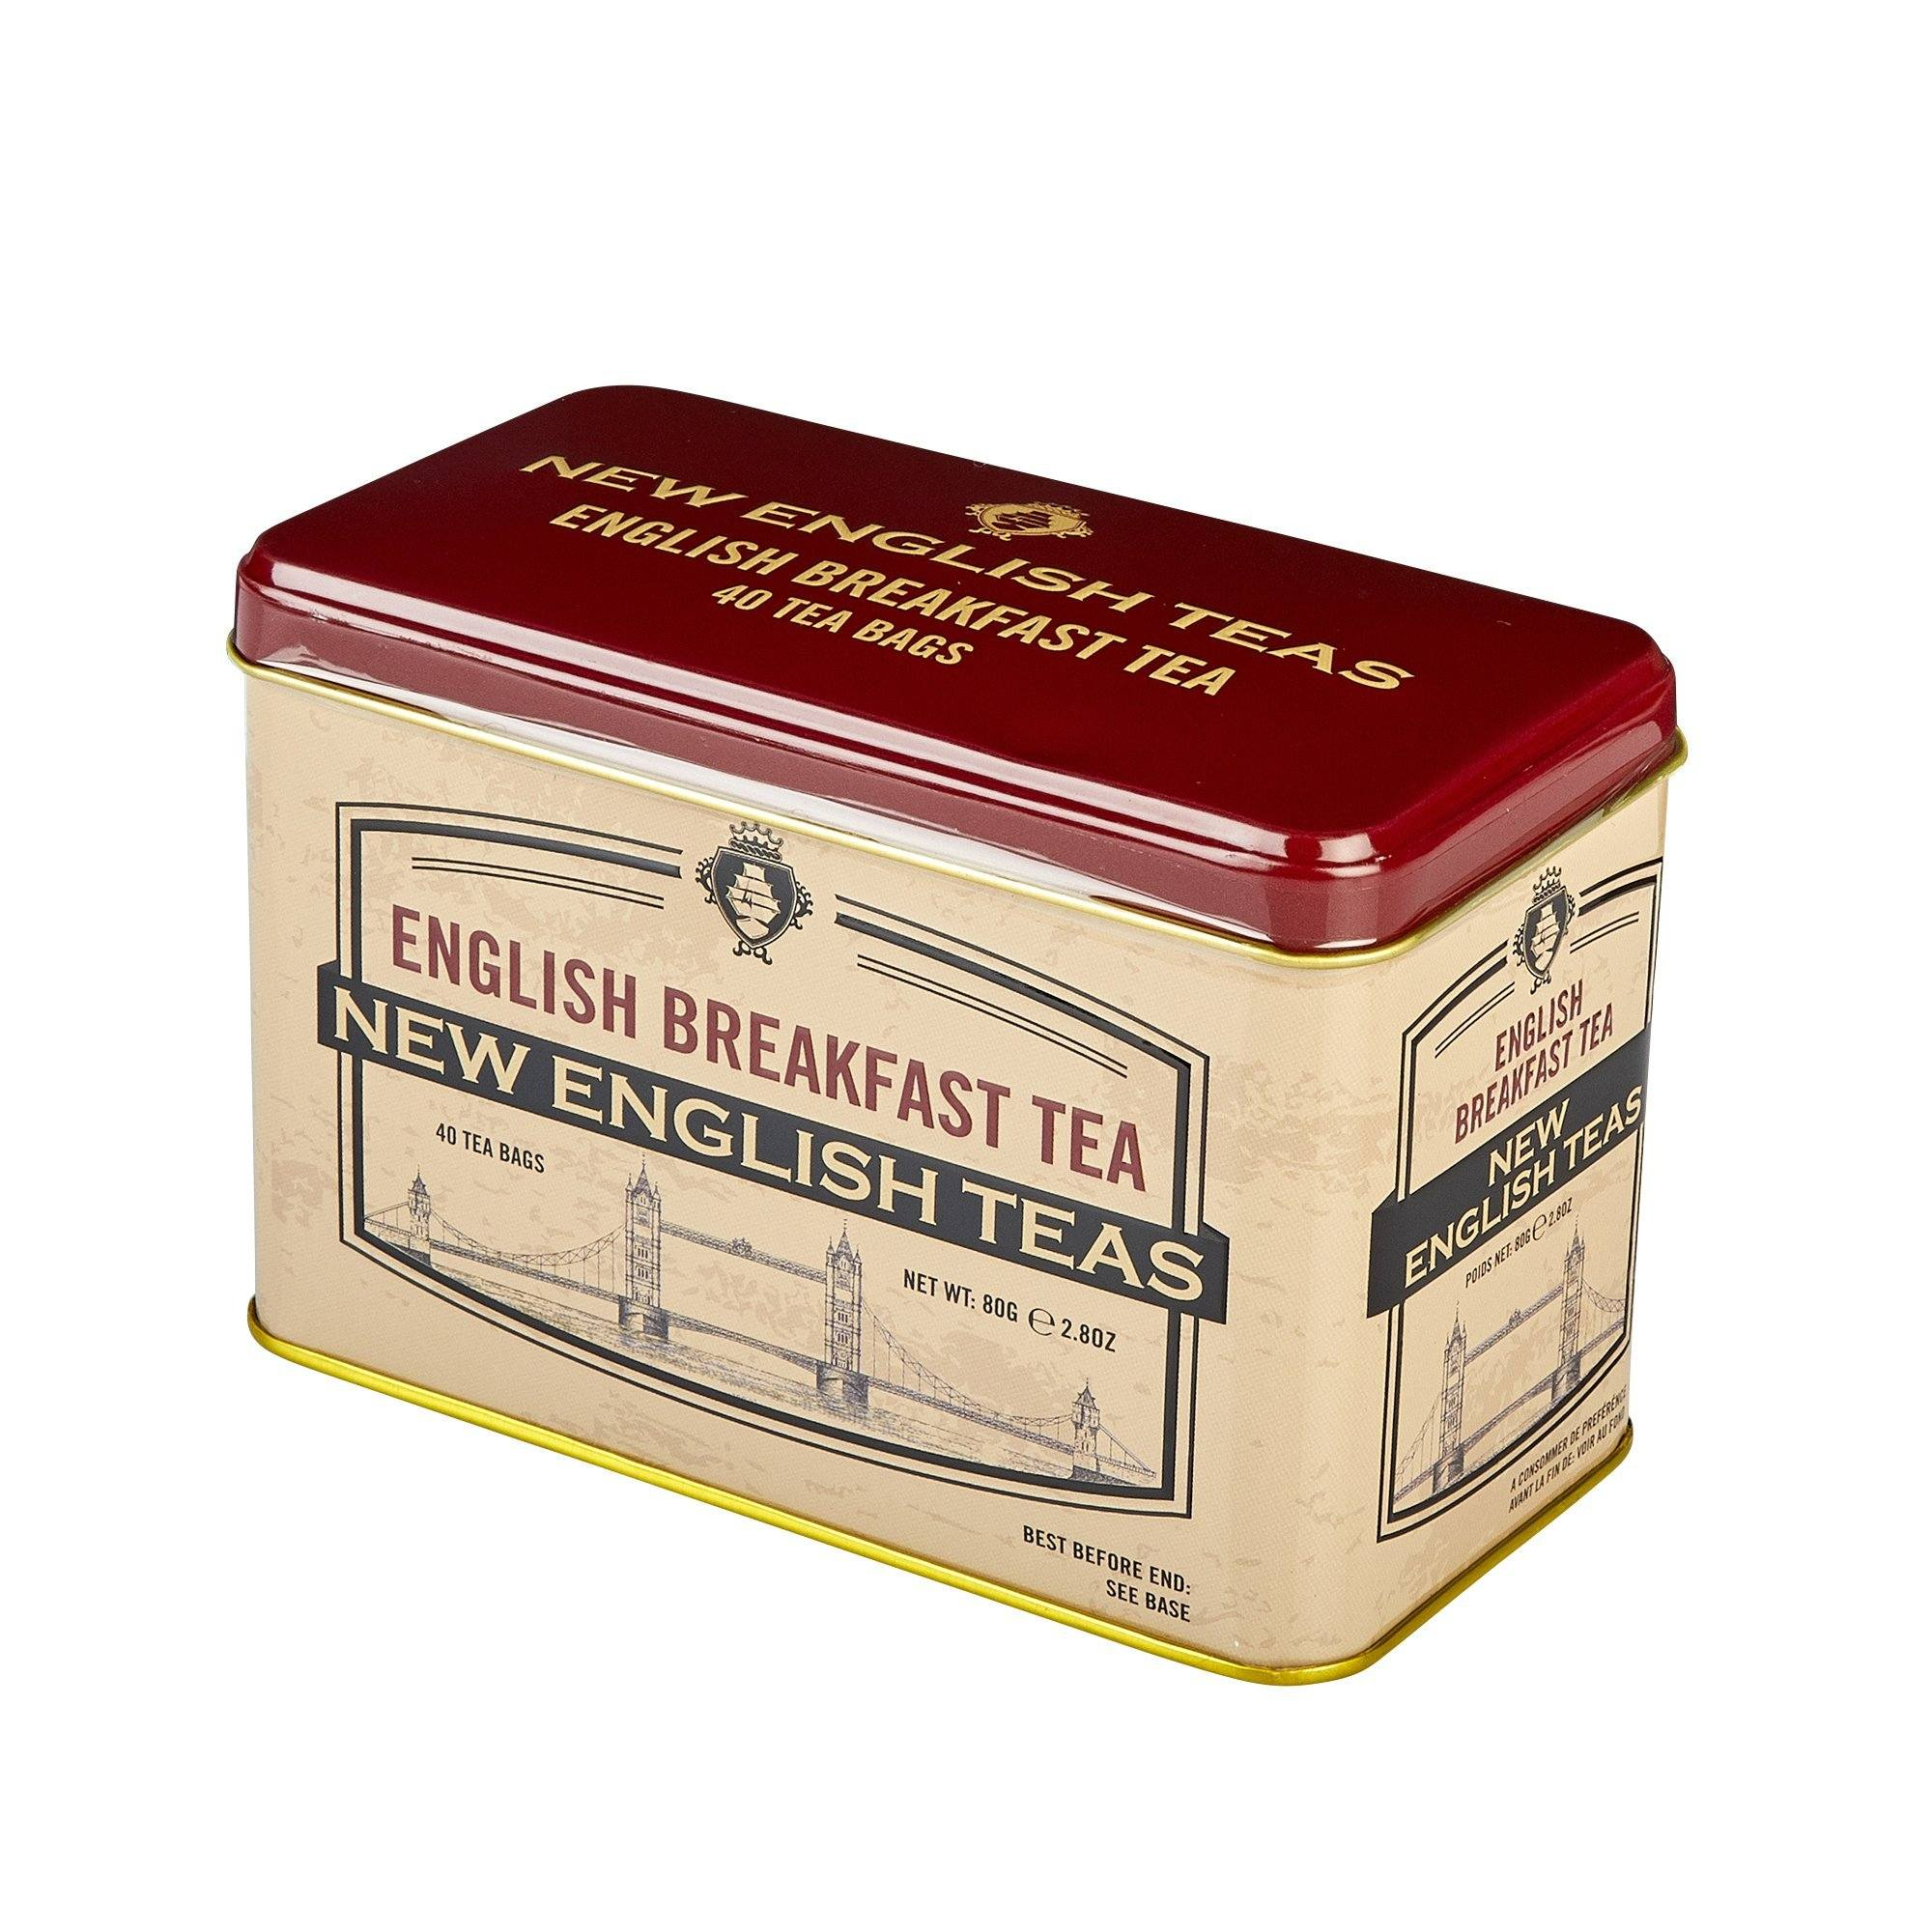 Vintage Selection Tower Bridge English Breakfast Tea Tin 40 Teabags Black Tea New English Teas